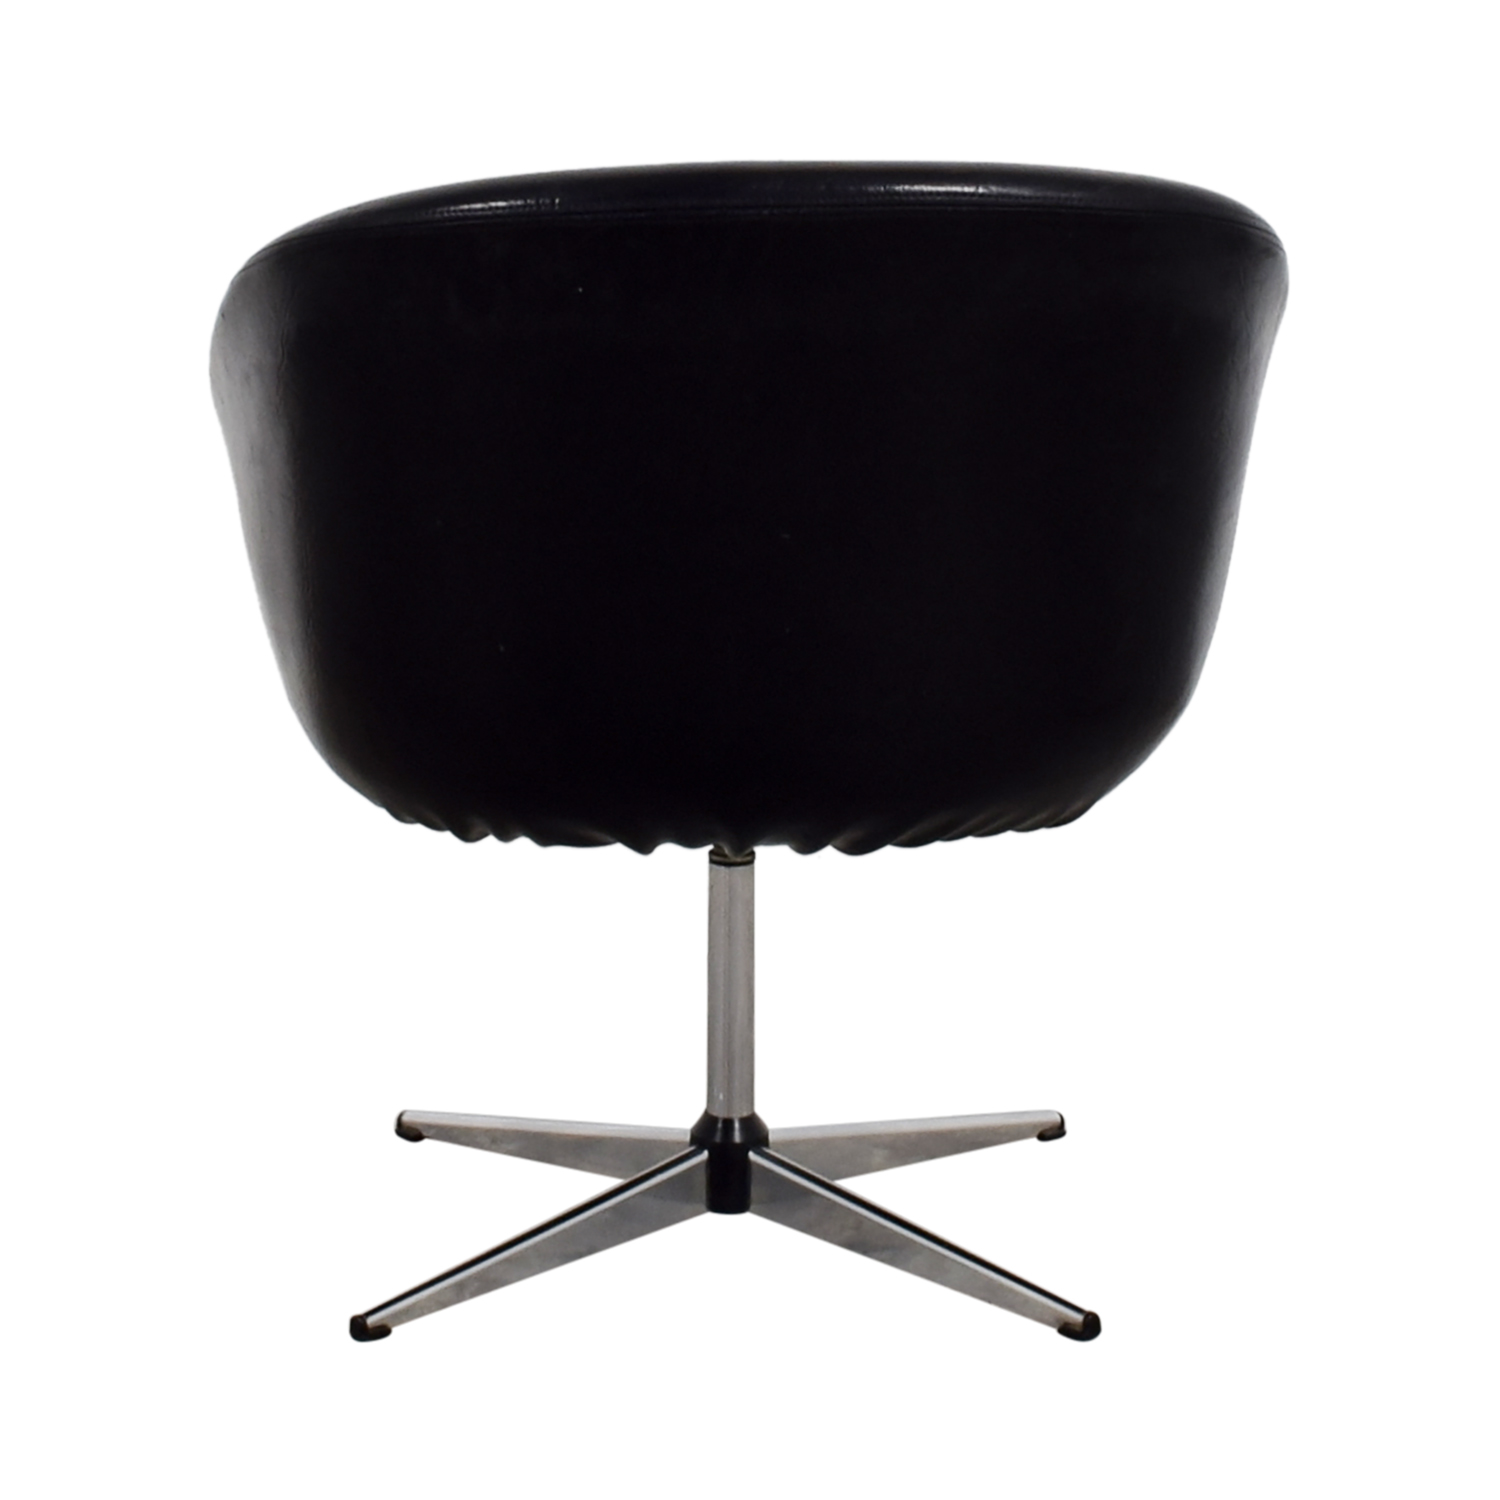 75% OFF   By Design By Design Modern Black Revolving Chair / Chairs